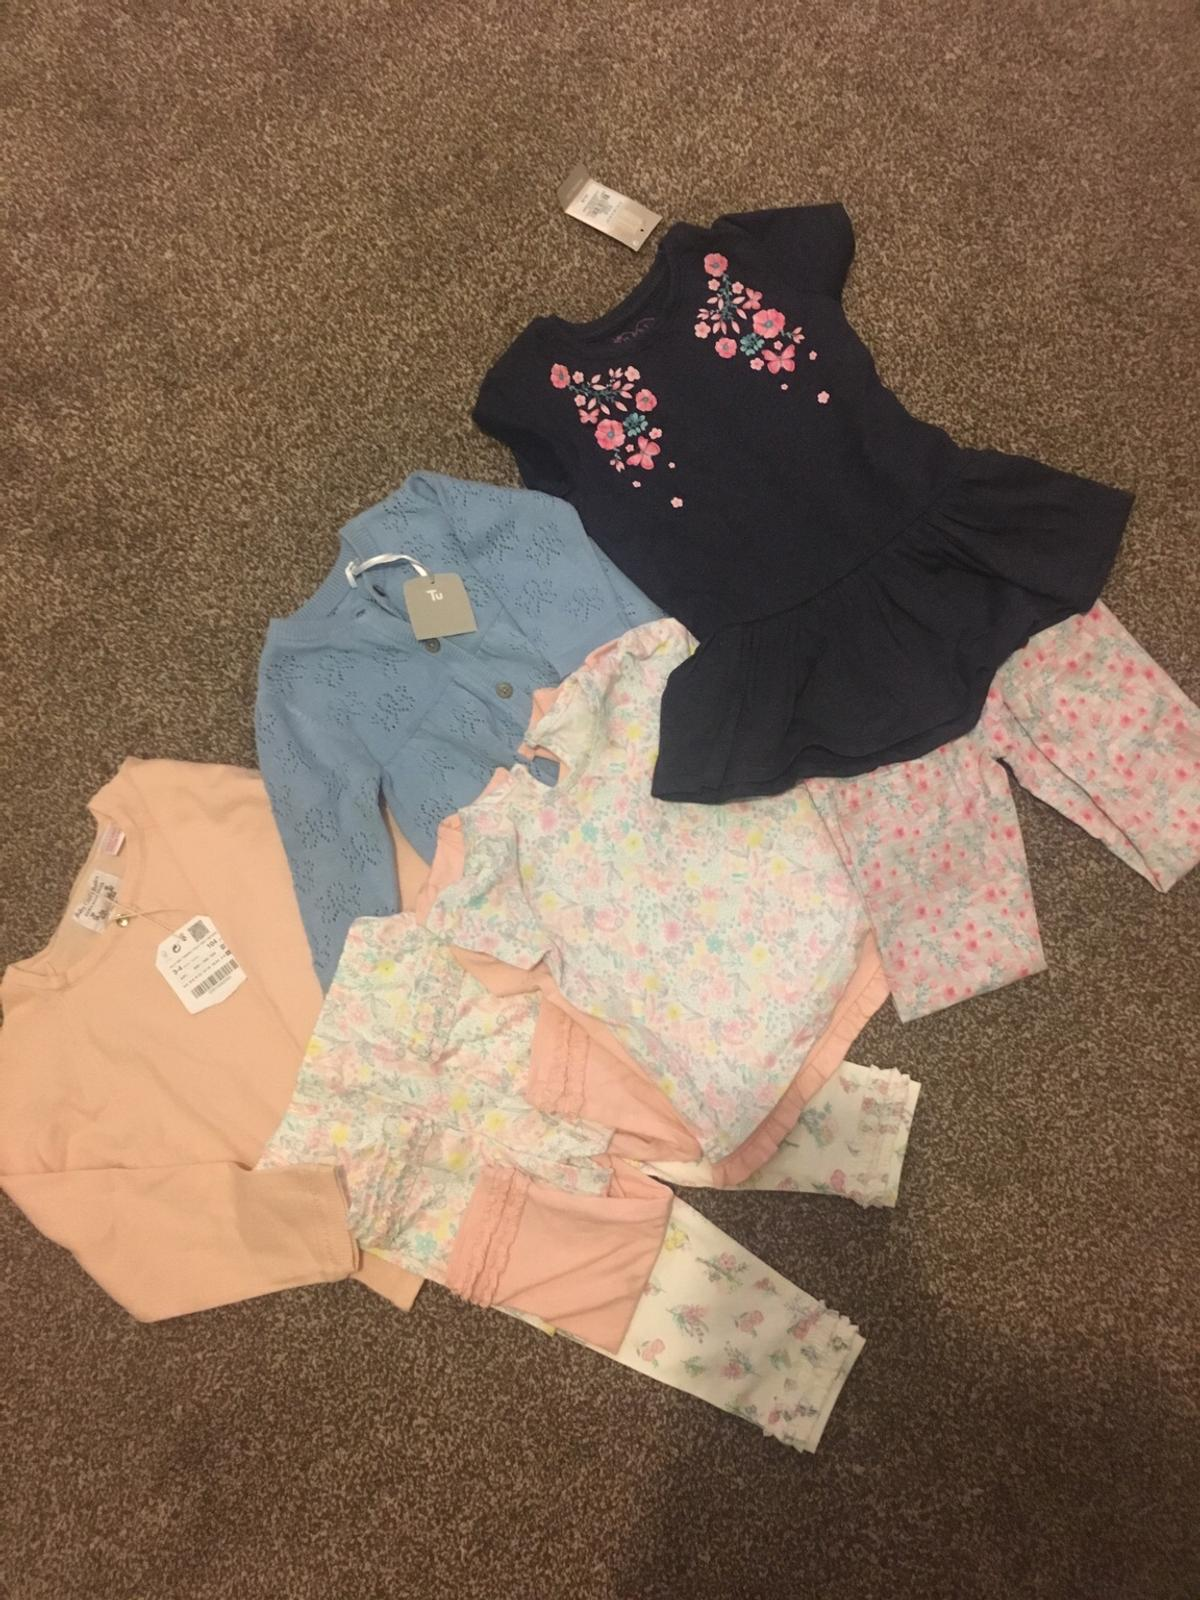 New with tags. Zara cardigan- size 3/4 F&F cardigan- up to 3 months Primark dress and leggings set- 24-36. NEW WITHOUT TAGS George leggings 6-9 months. George T-shirt's 0-3 months. Next tights- 0-6 months  Pet free/smoke free home. Negotiations welcome.